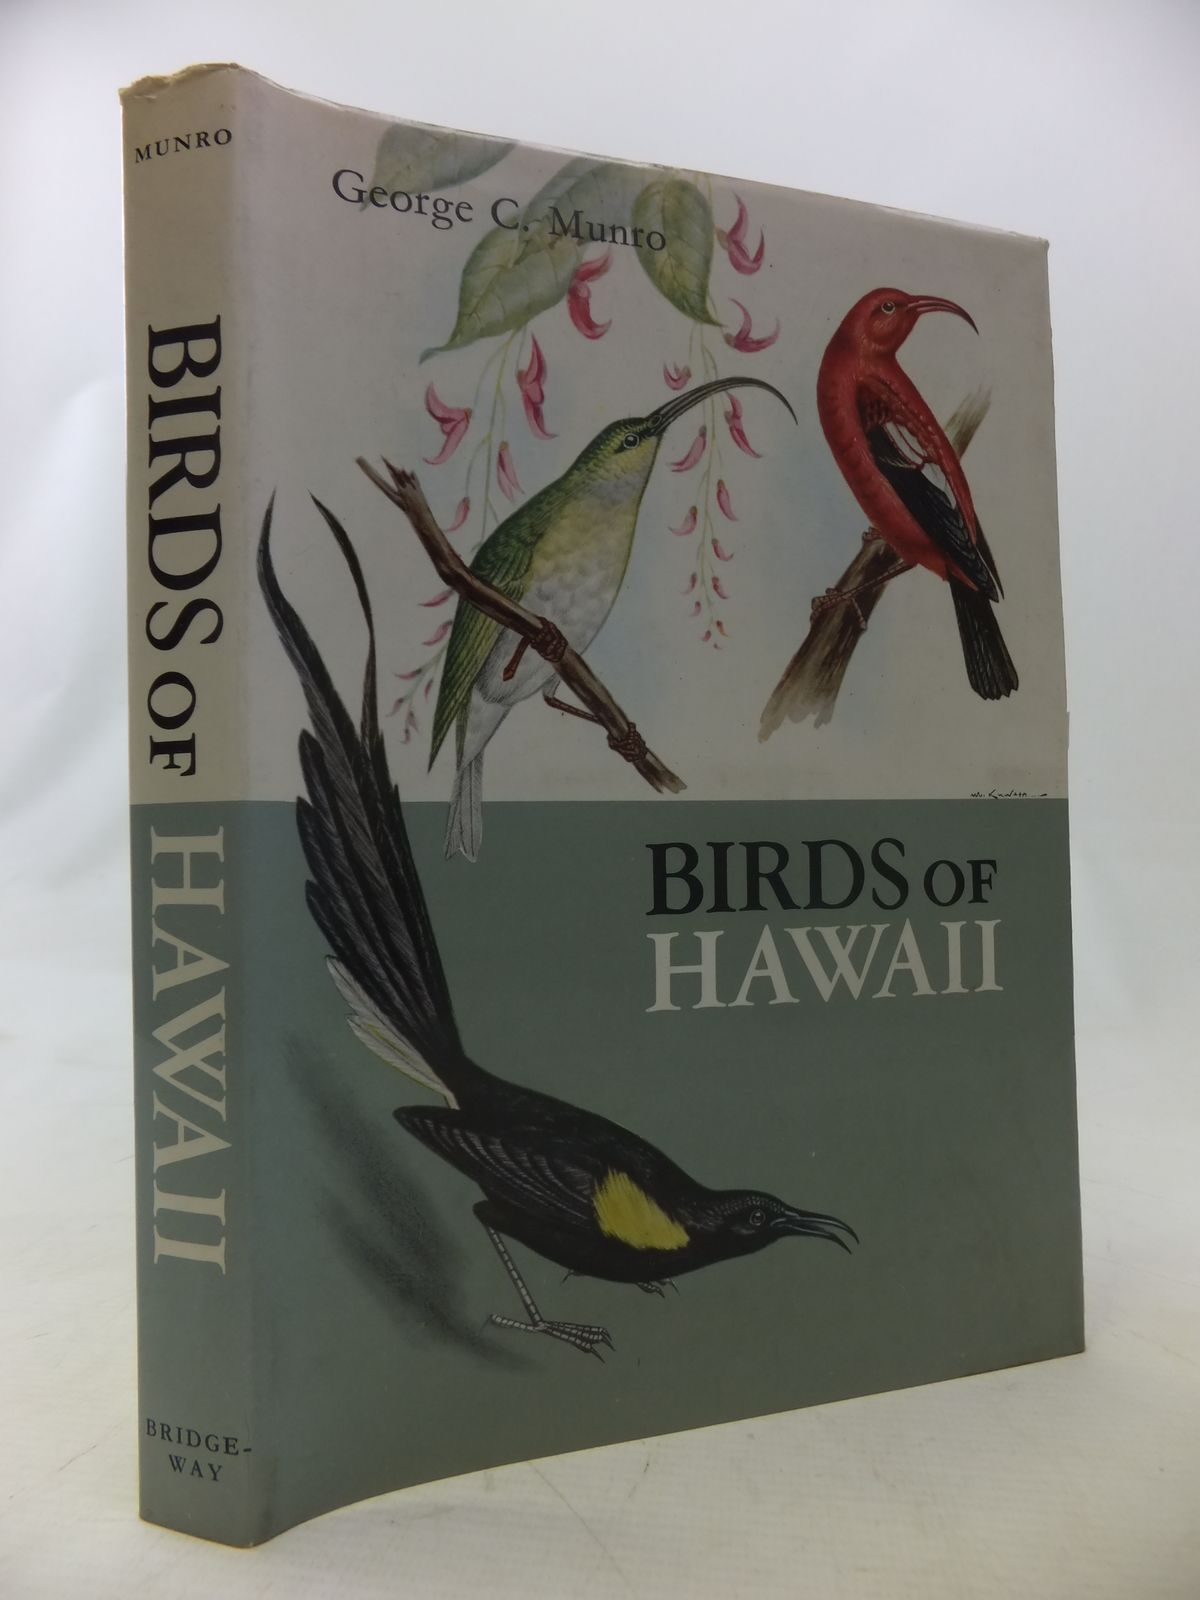 Photo of BIRDS OF HAWAII written by Munro, George C. illustrated by Oda, Y. published by Bridgeway Press (STOCK CODE: 1811089)  for sale by Stella & Rose's Books